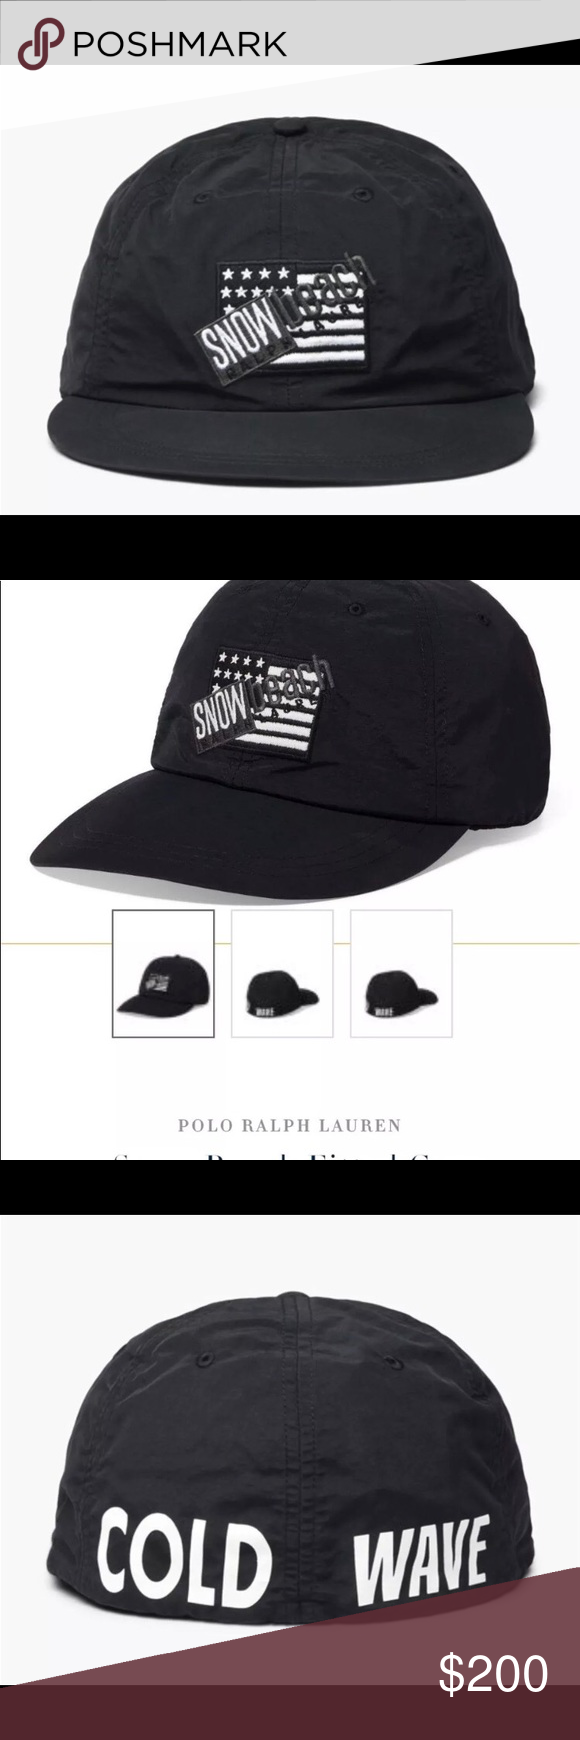 c2489d64c4 Polo Ralph Lauren Snow Beach black and white cap Up for sale is a brand new